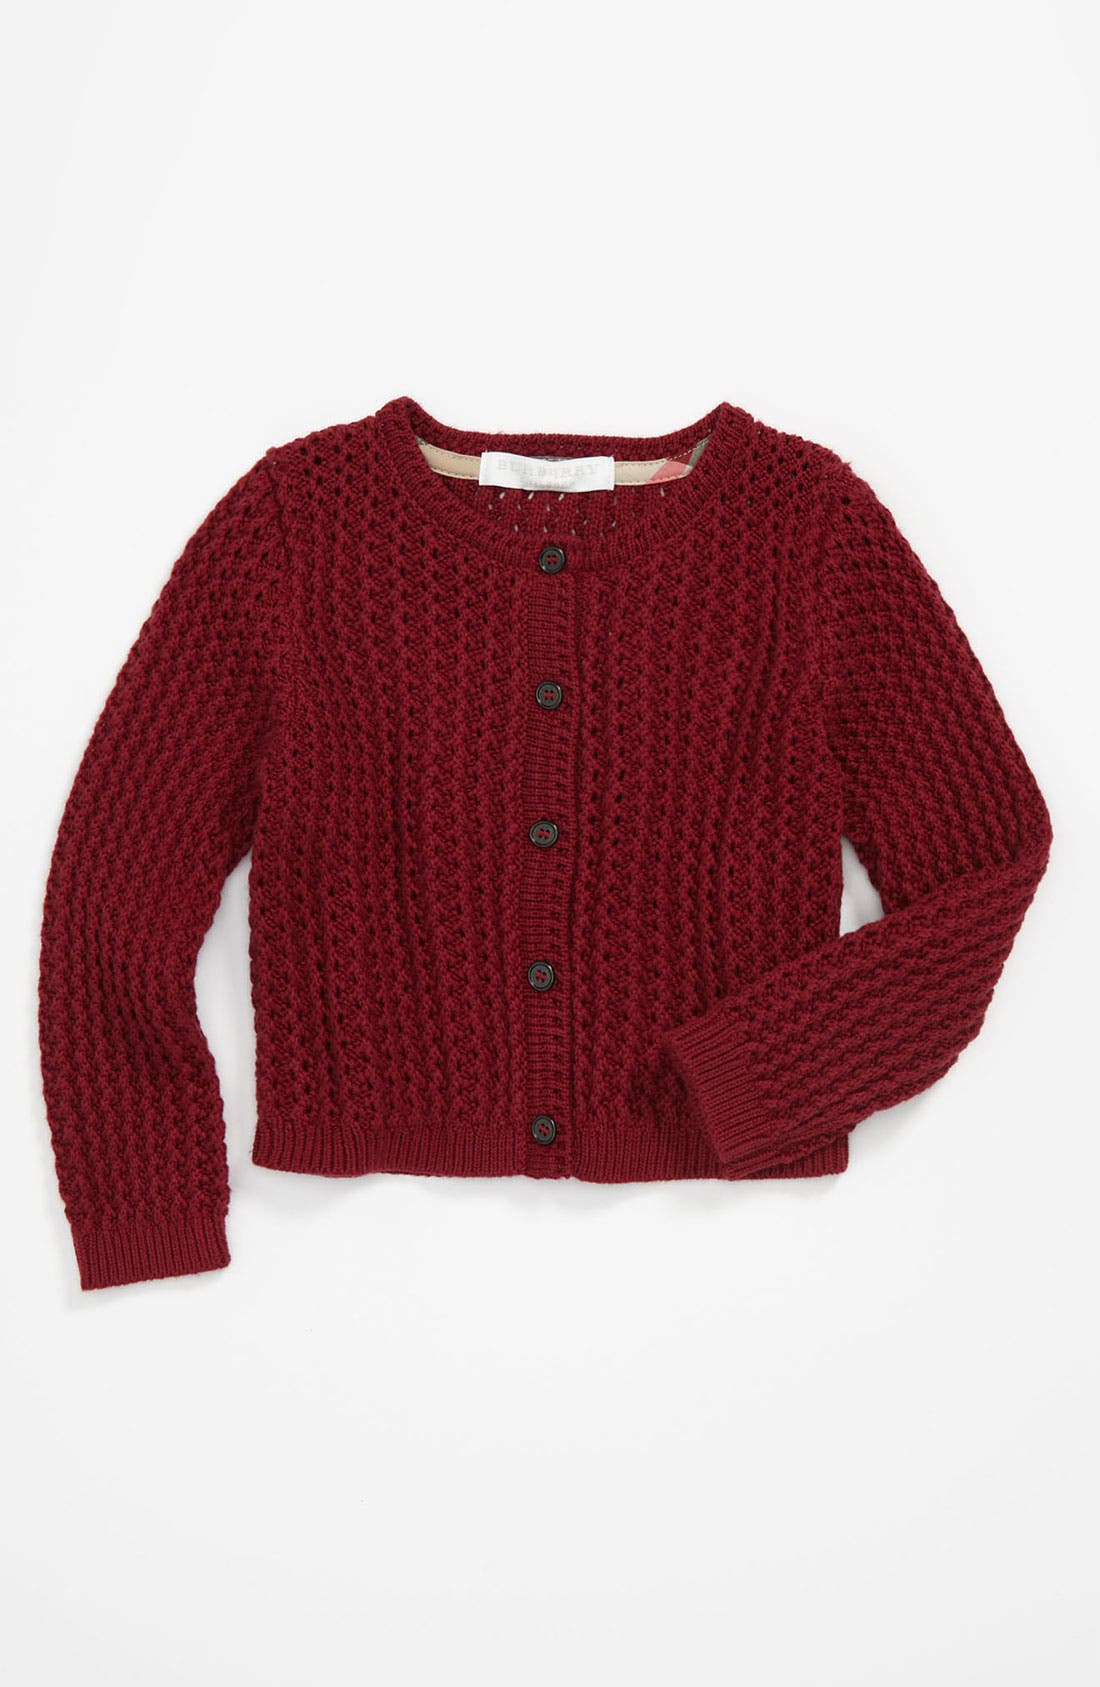 Alternate Image 1 Selected - Burberry 'Mini Tobalt' Cardigan (Baby)